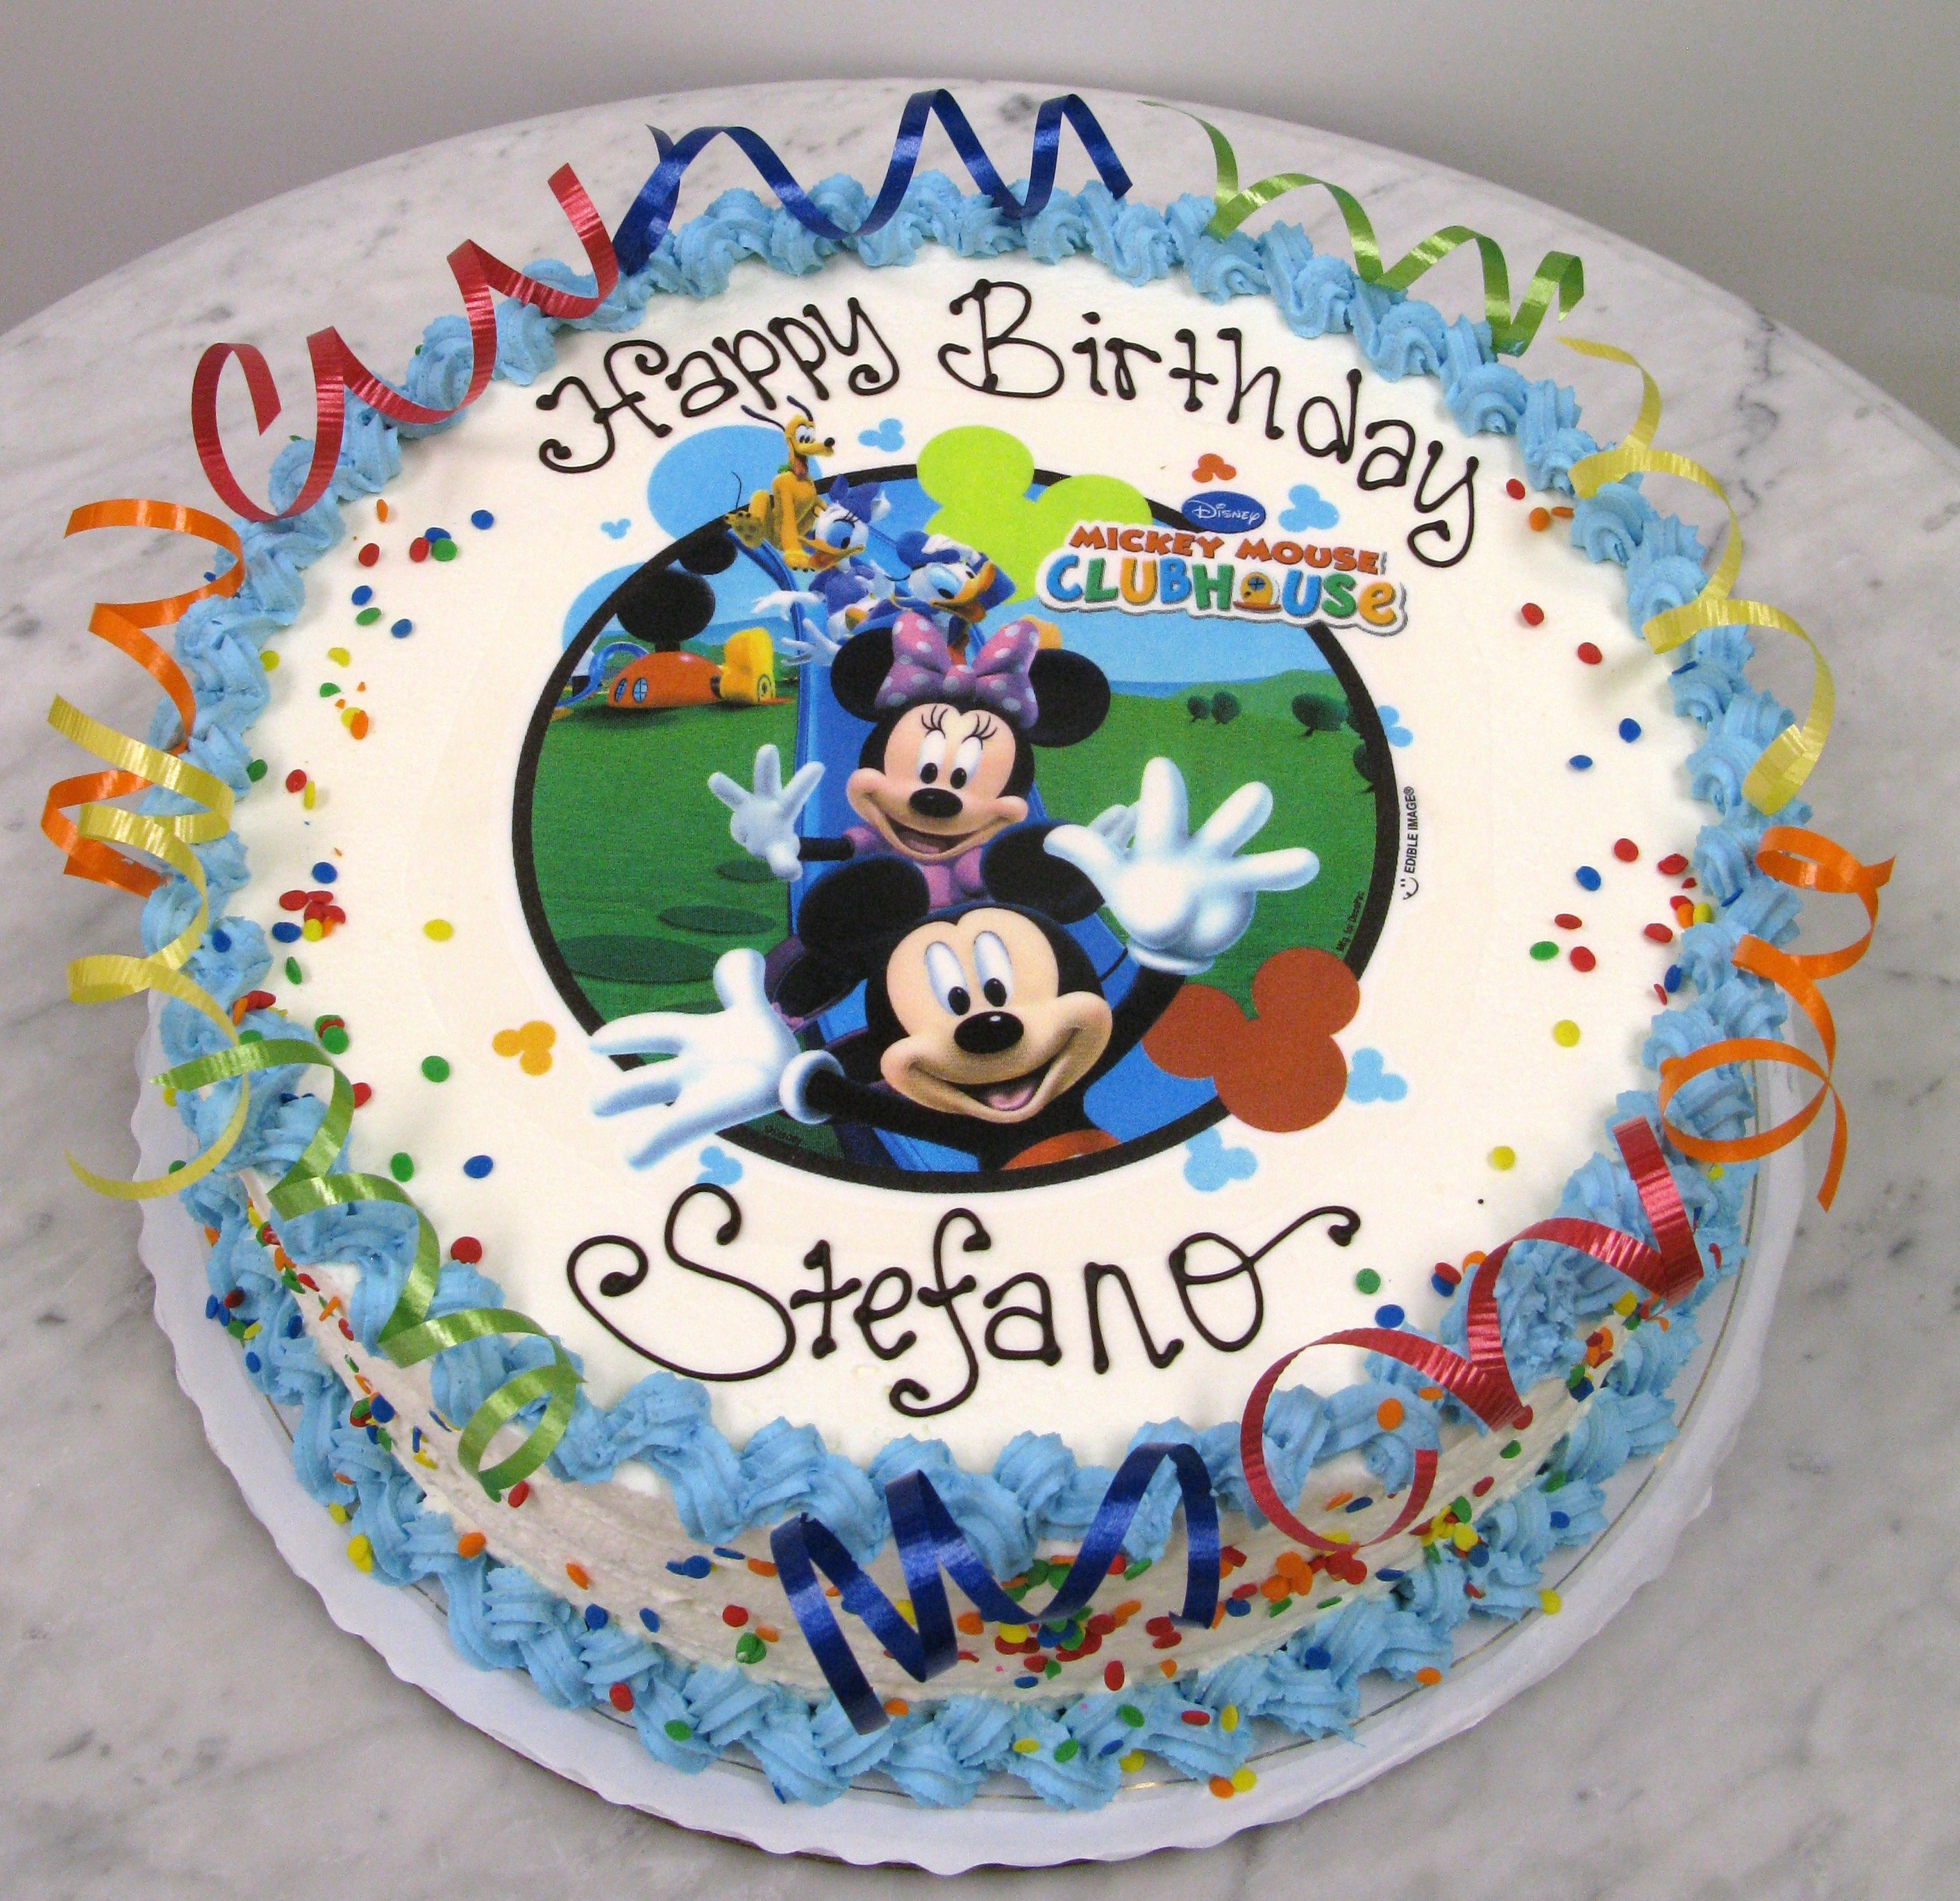 Licensed Edible Cake Images : Licensed Edible Images   Mother Mousse